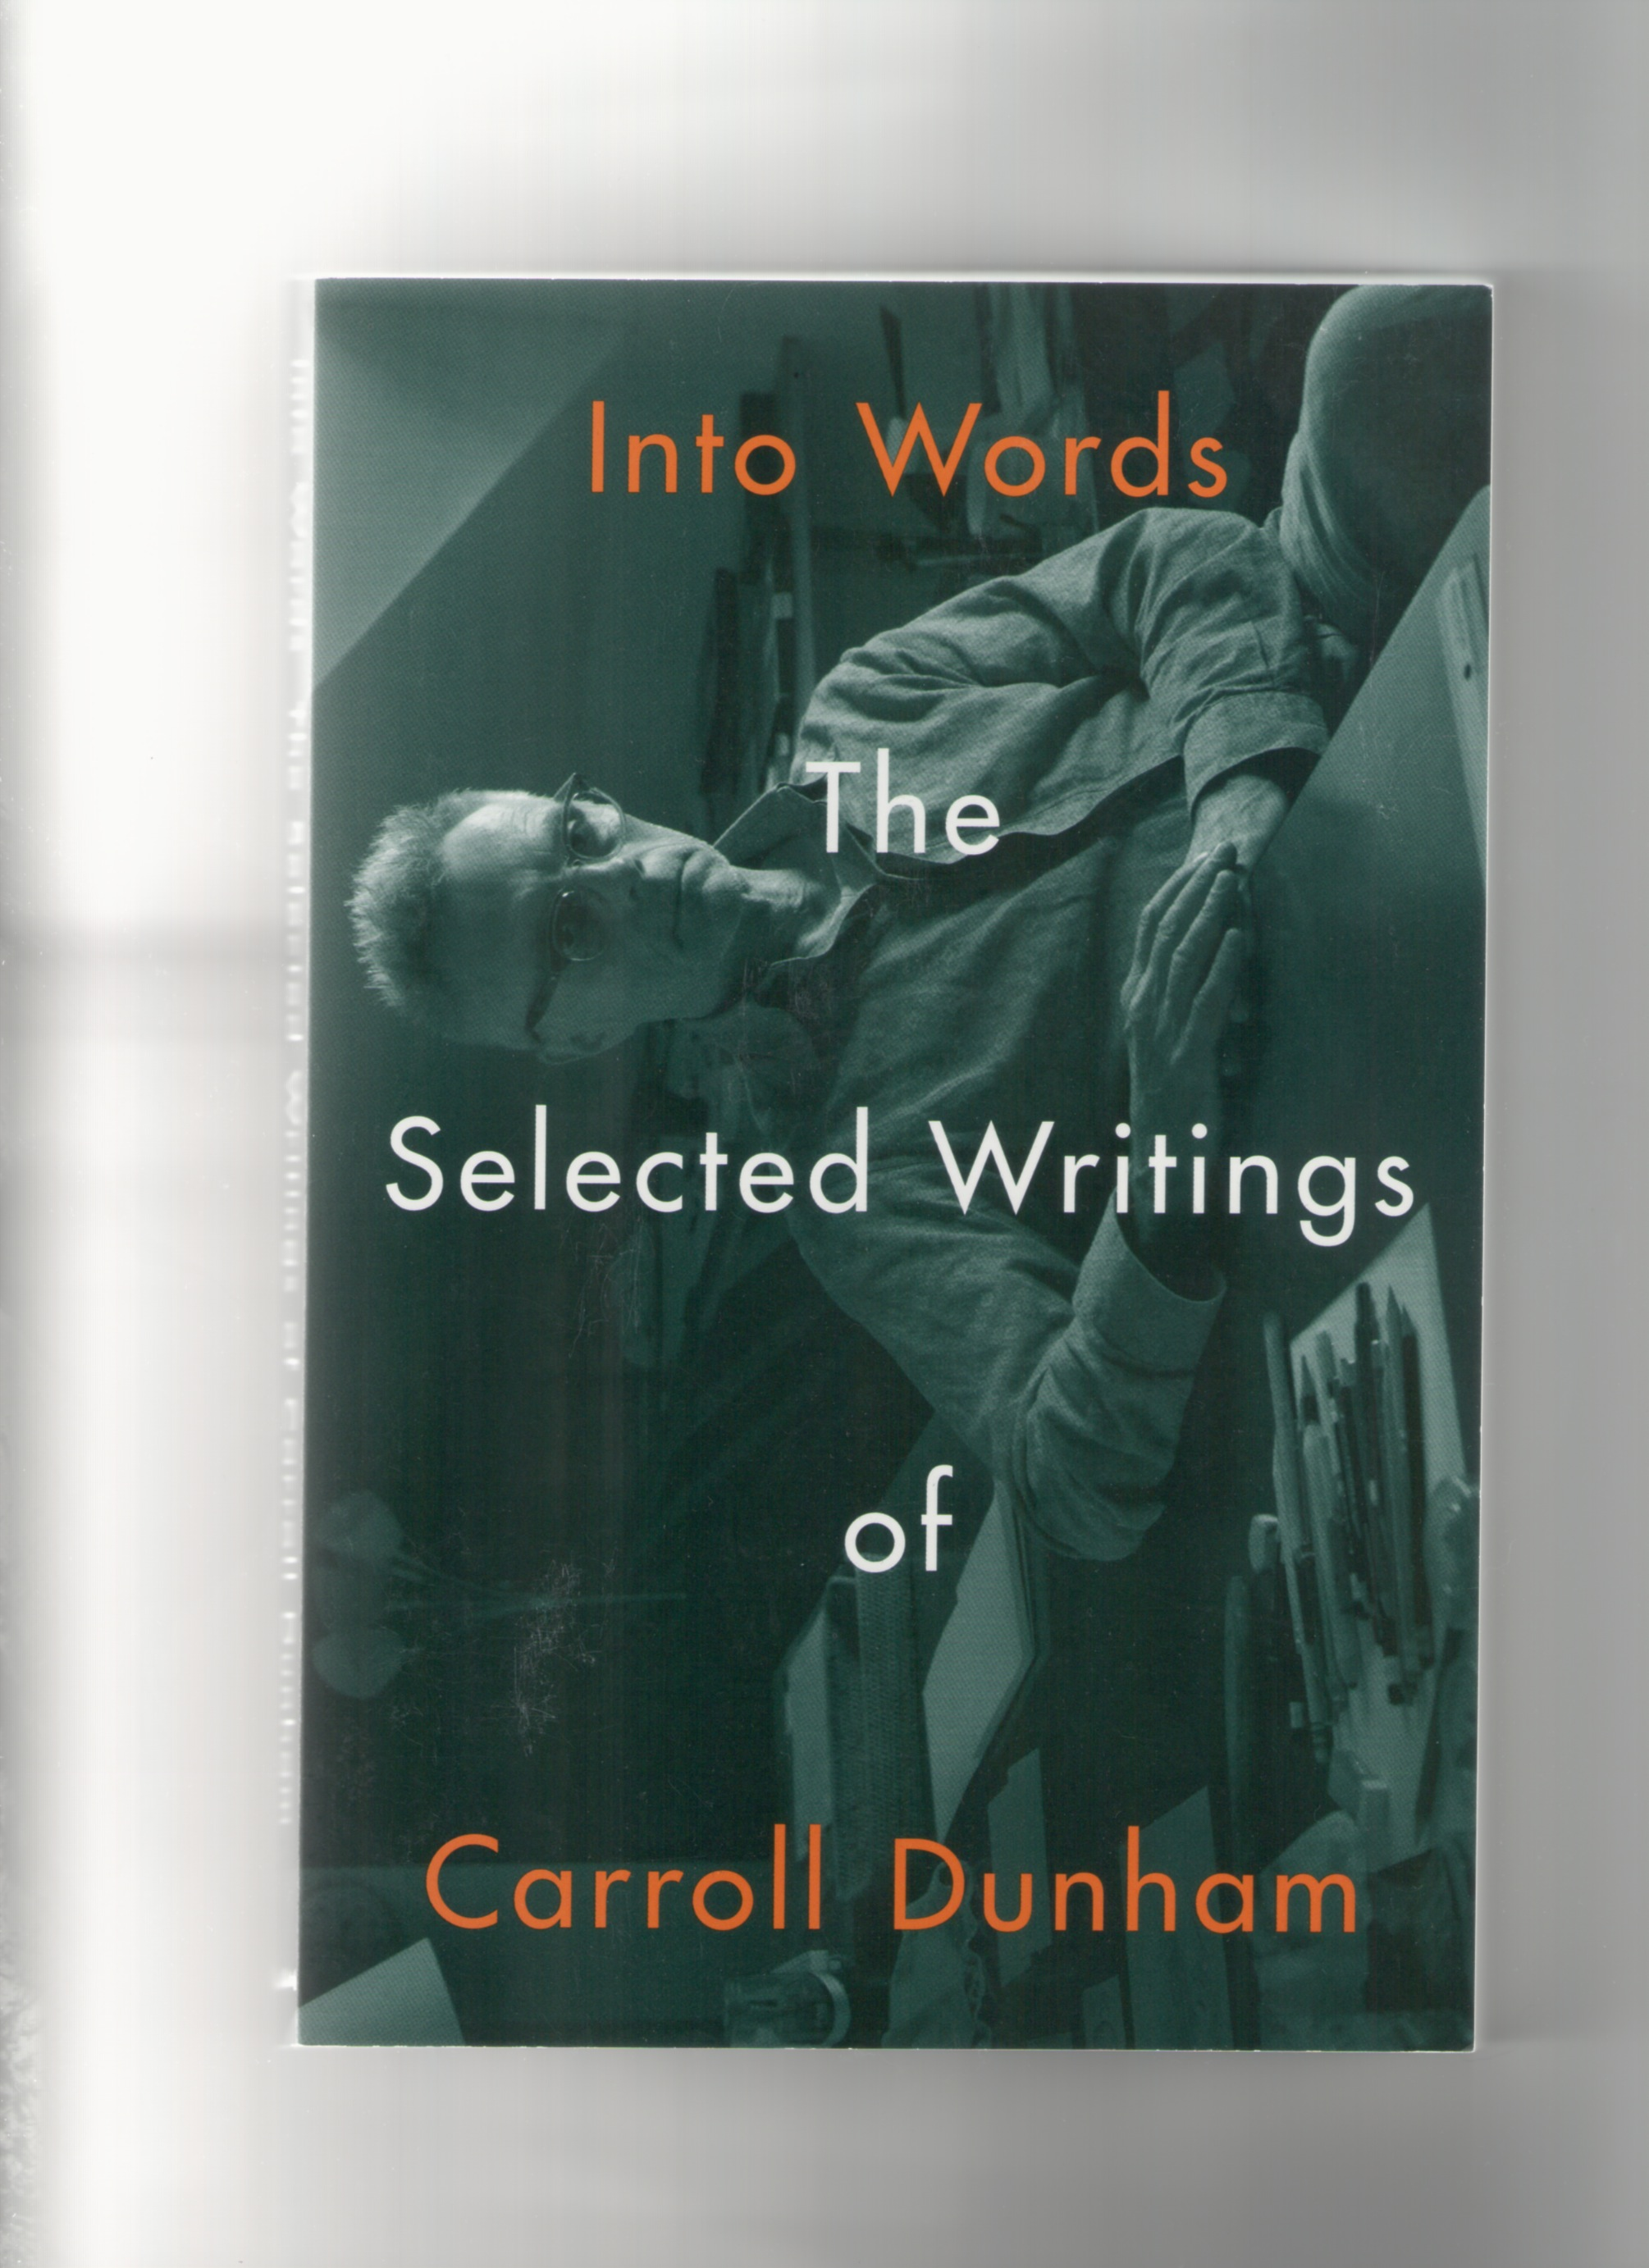 DUNHAM, Carroll - Into Words. The Selected Writings of Carroll Dunham